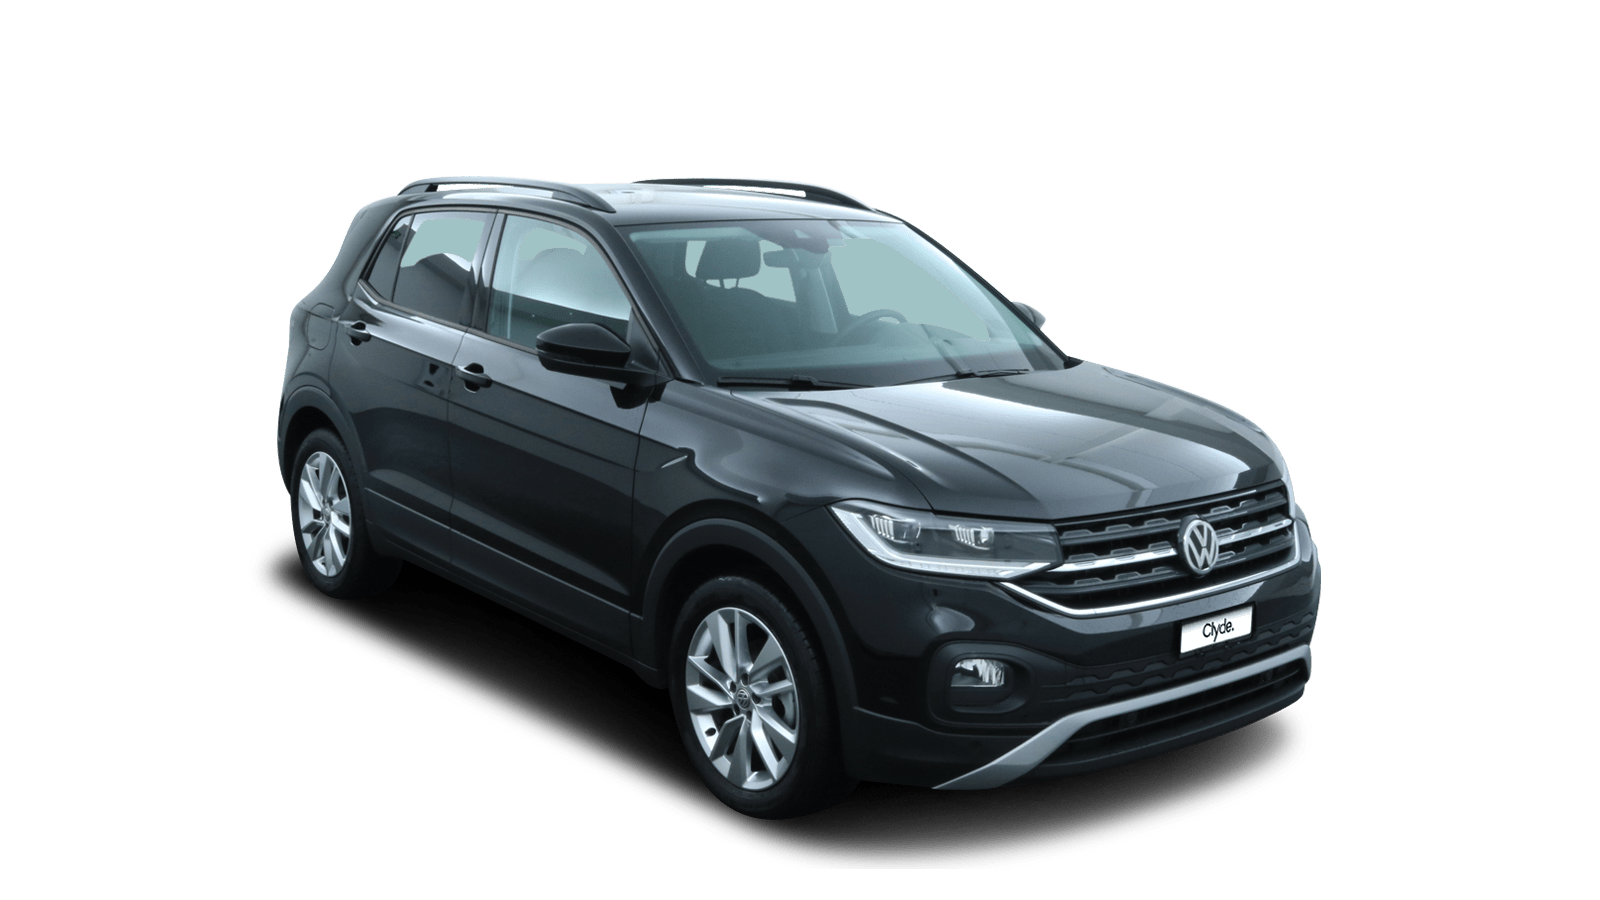 VW T-Cross Schwarz front - Clyde Auto-Abo